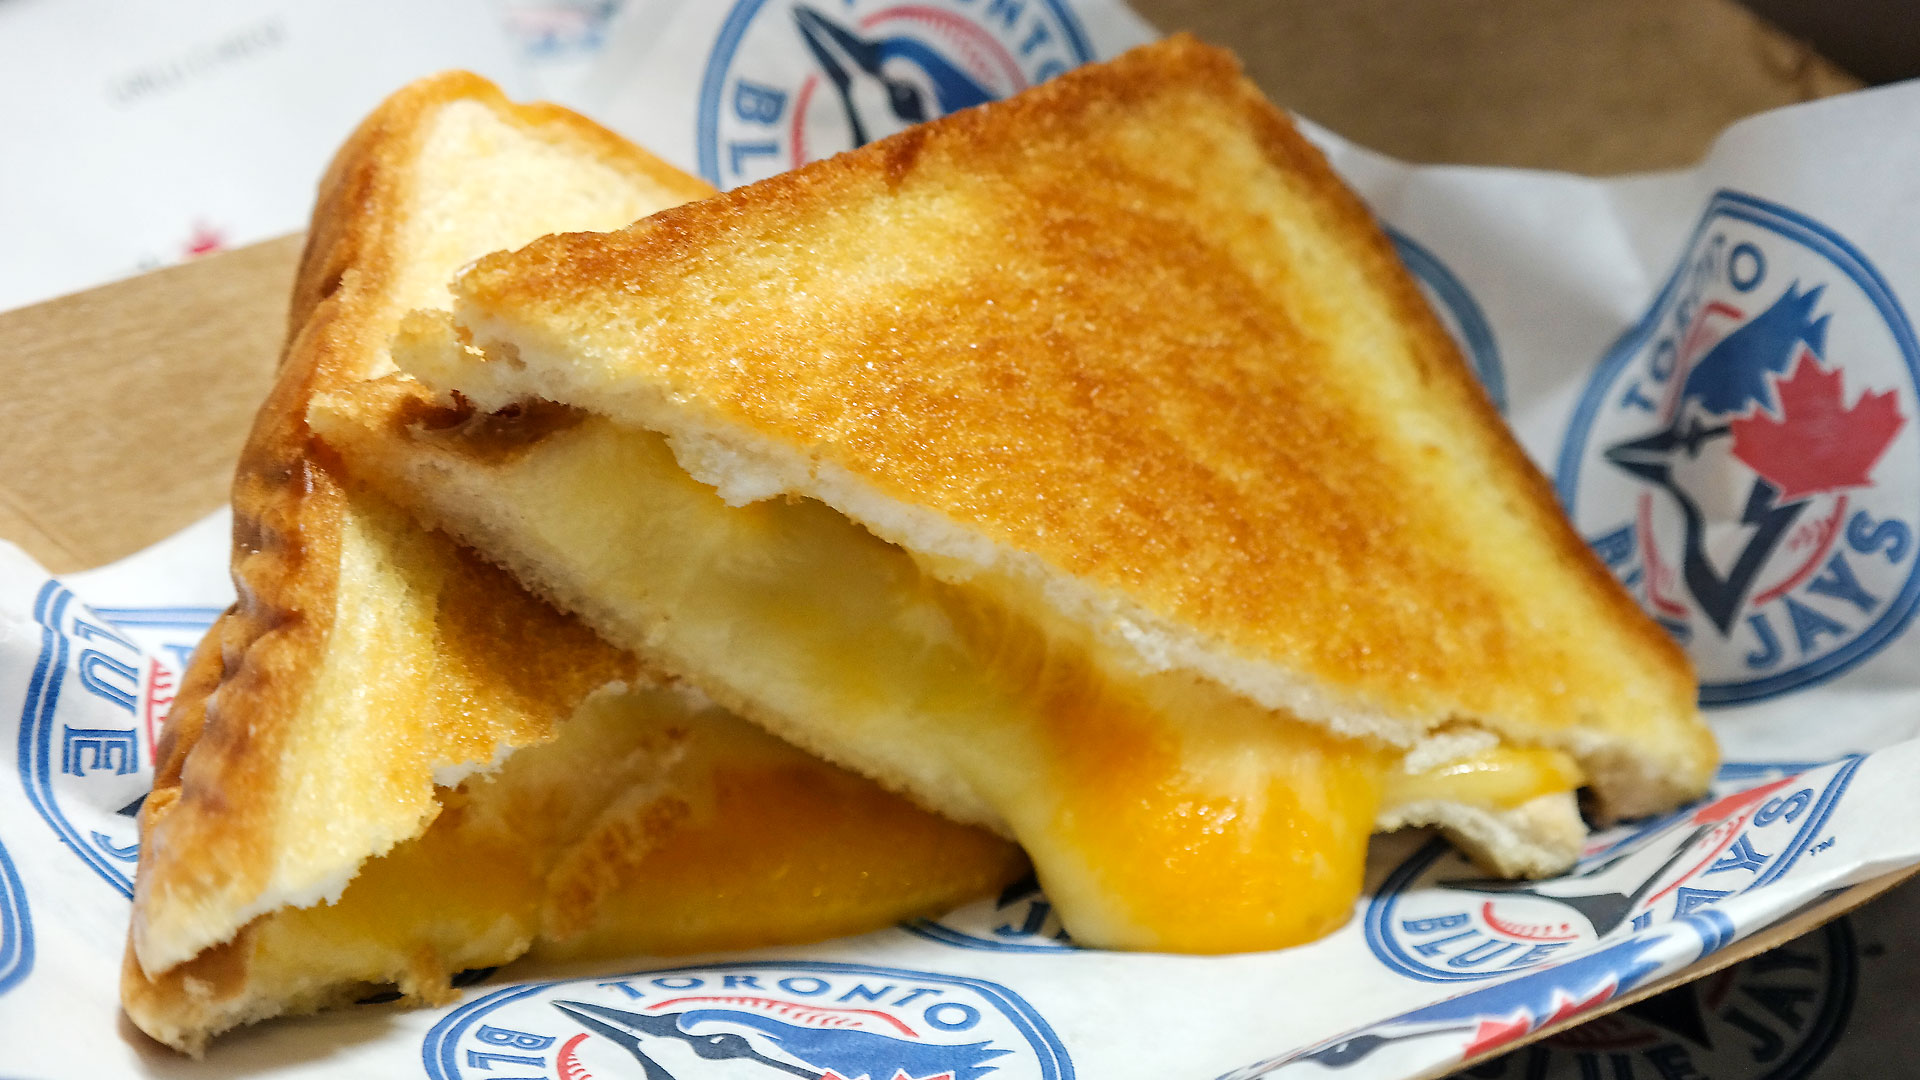 Grilli Cheese